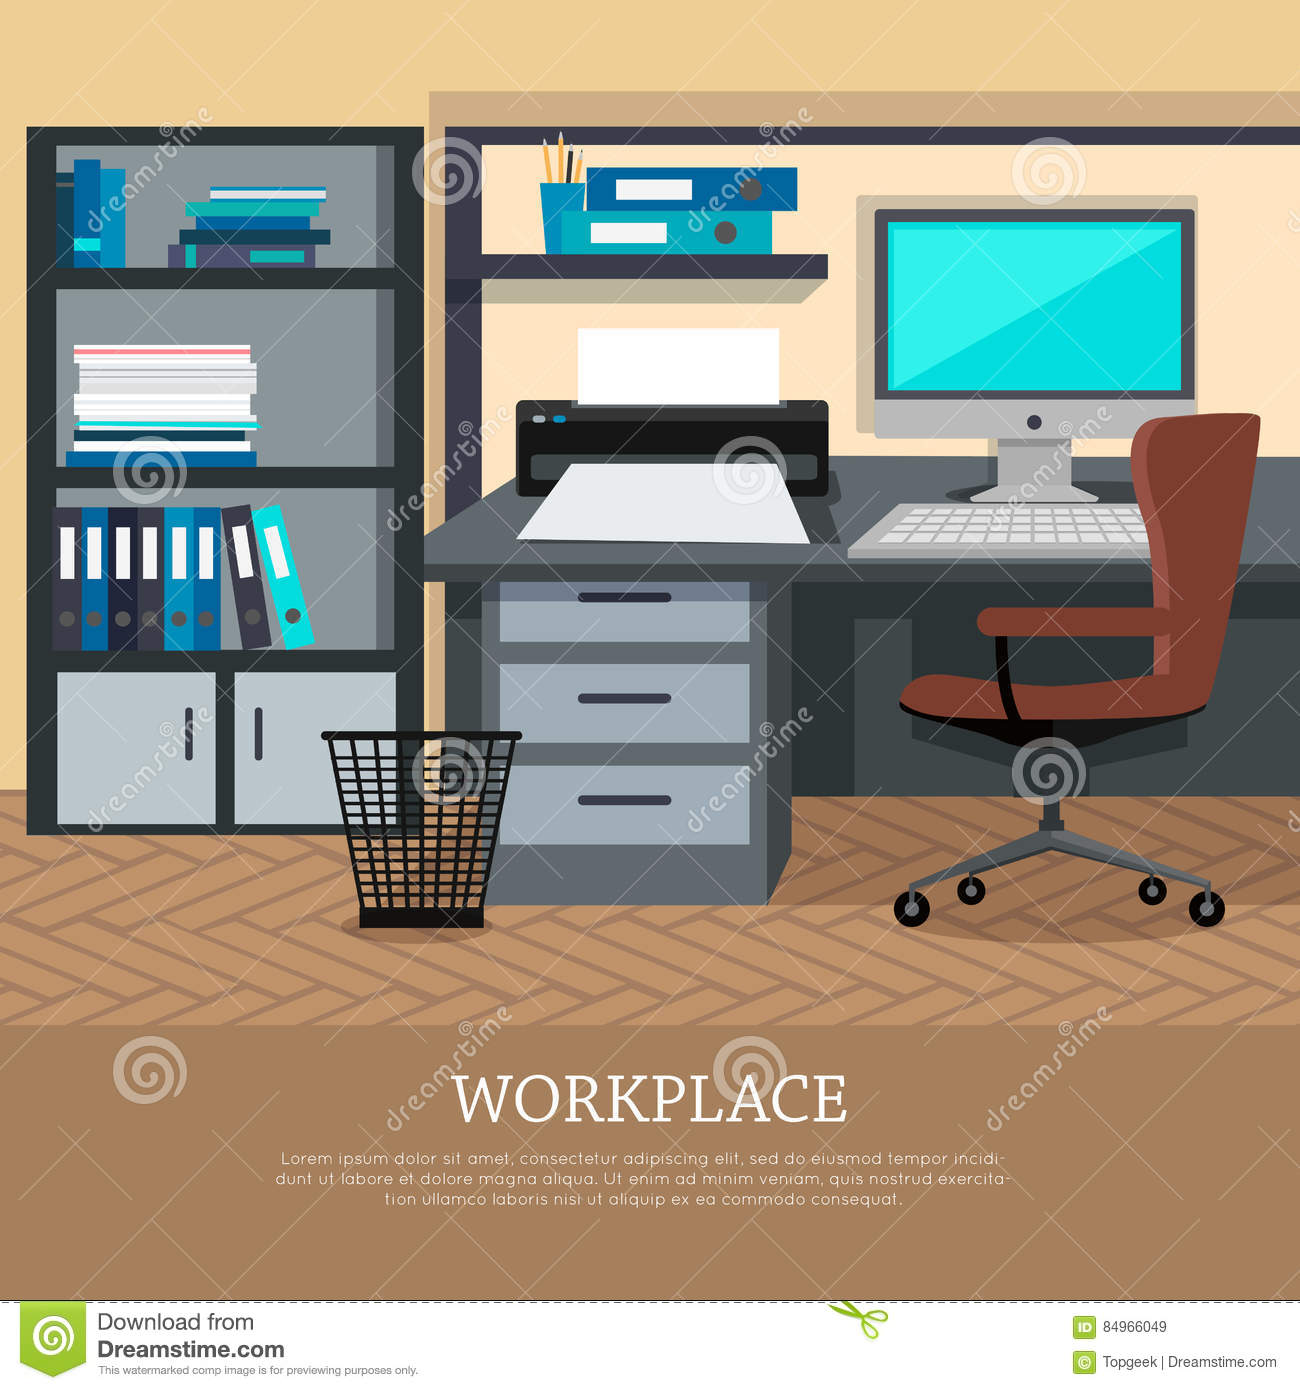 Workplace Concept Vector Web Banner In Flat Design Stock